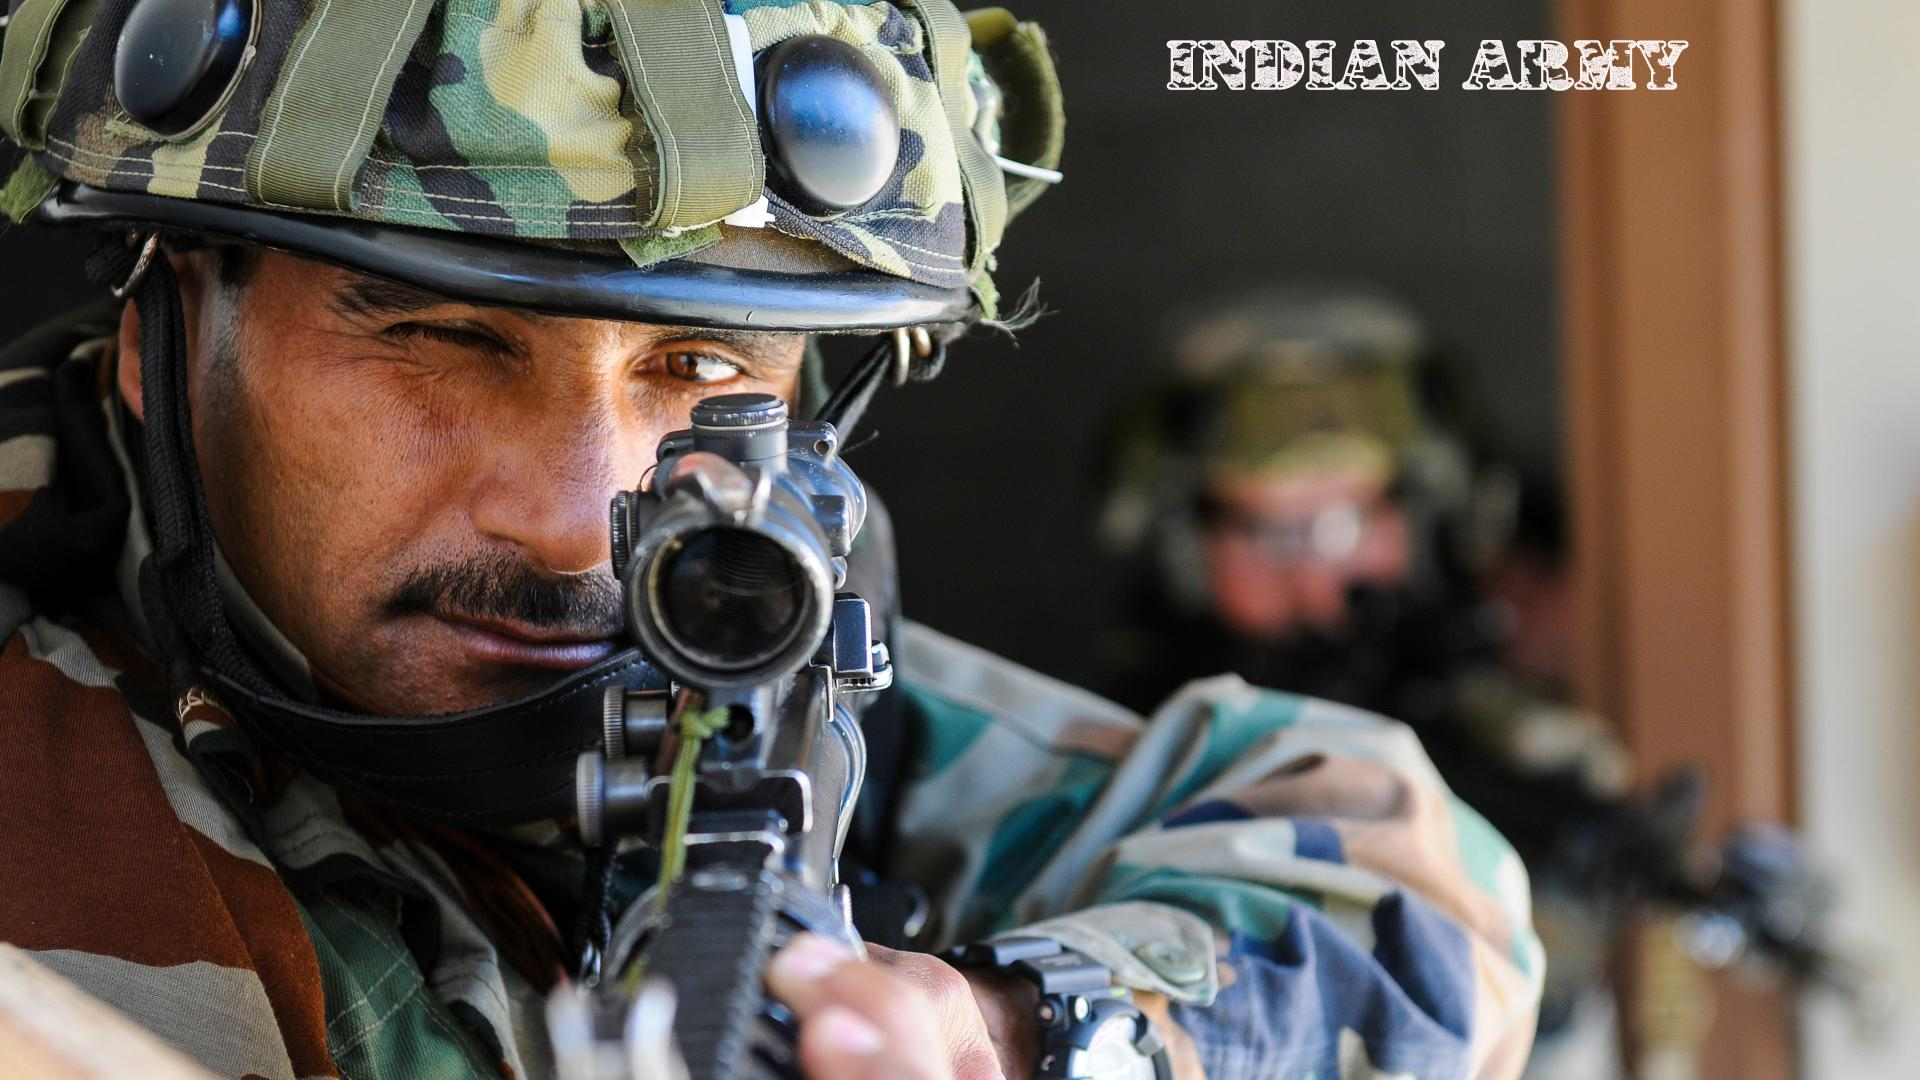 Indian Army Wallpapers Hd Free Download: Indian Army Wallpaper In 4K Ultra HD